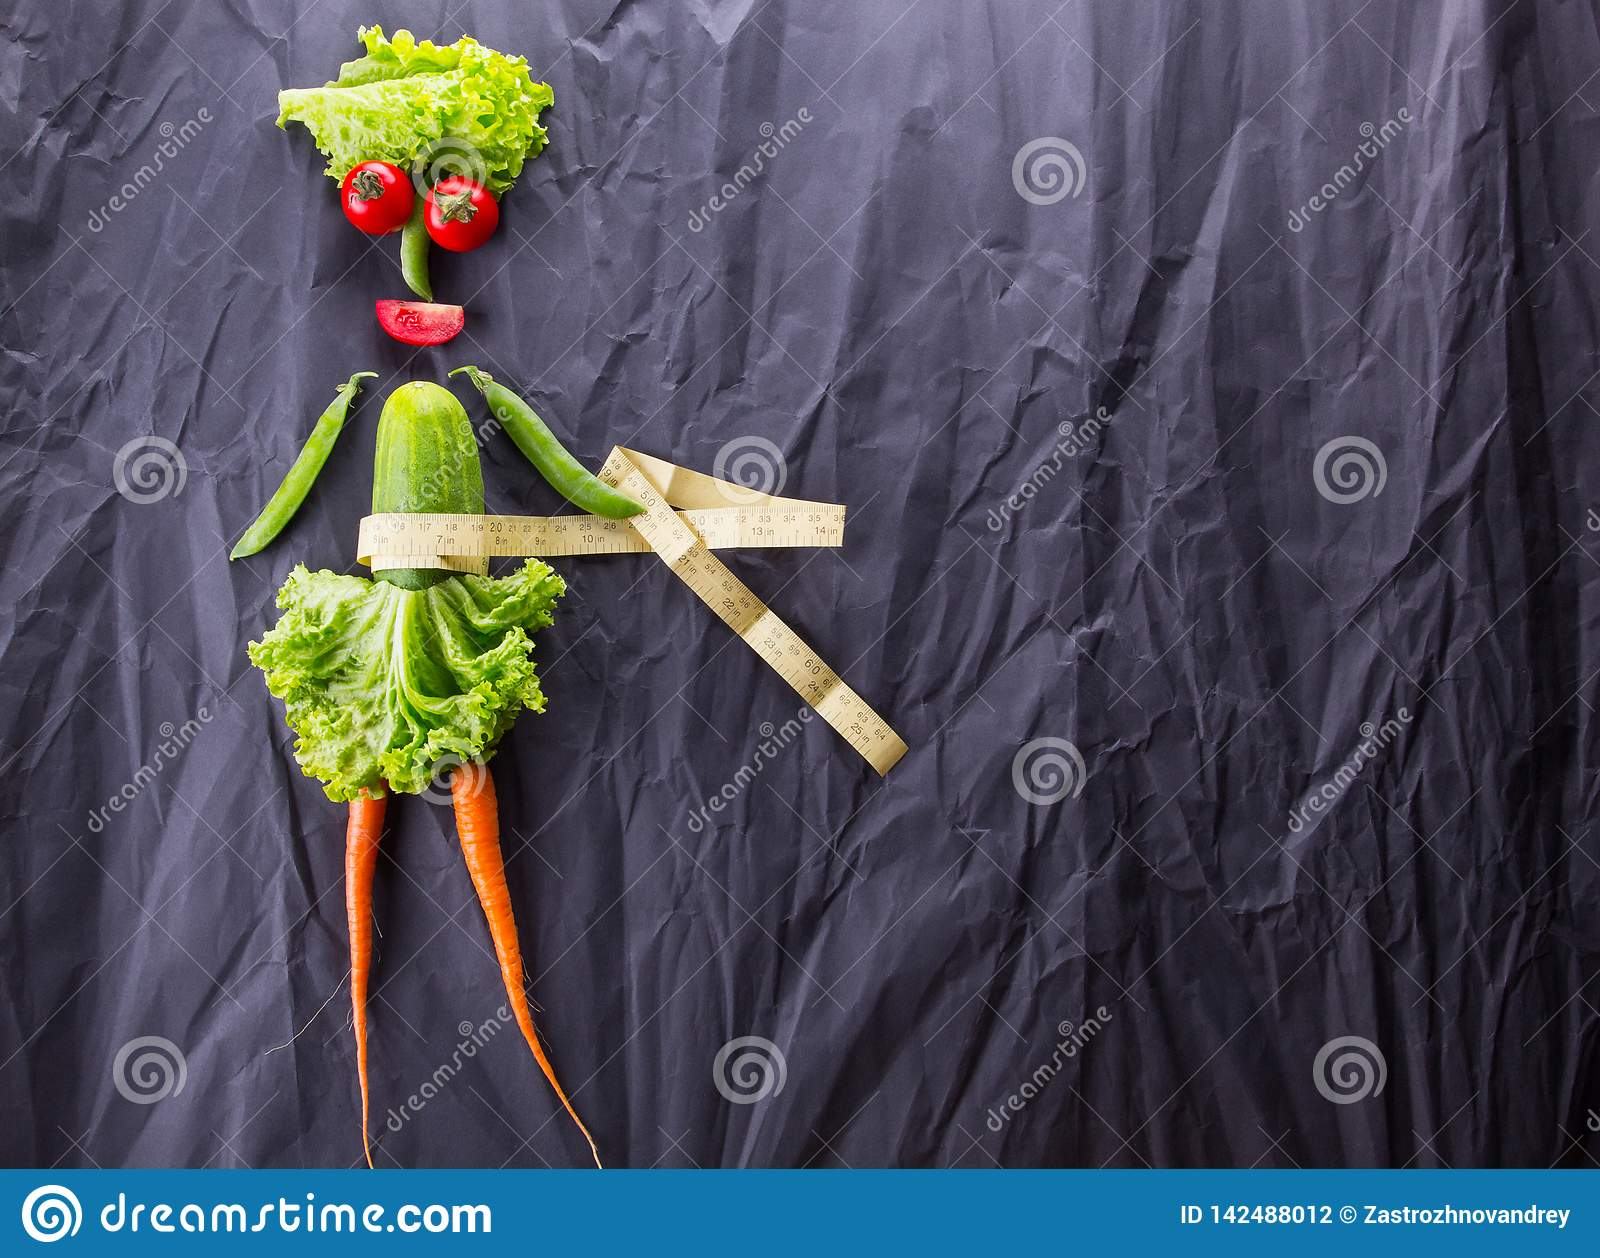 A food concept of the girl with vegetables on black paper background. Weight loss and healthy lifestyle. With space for text